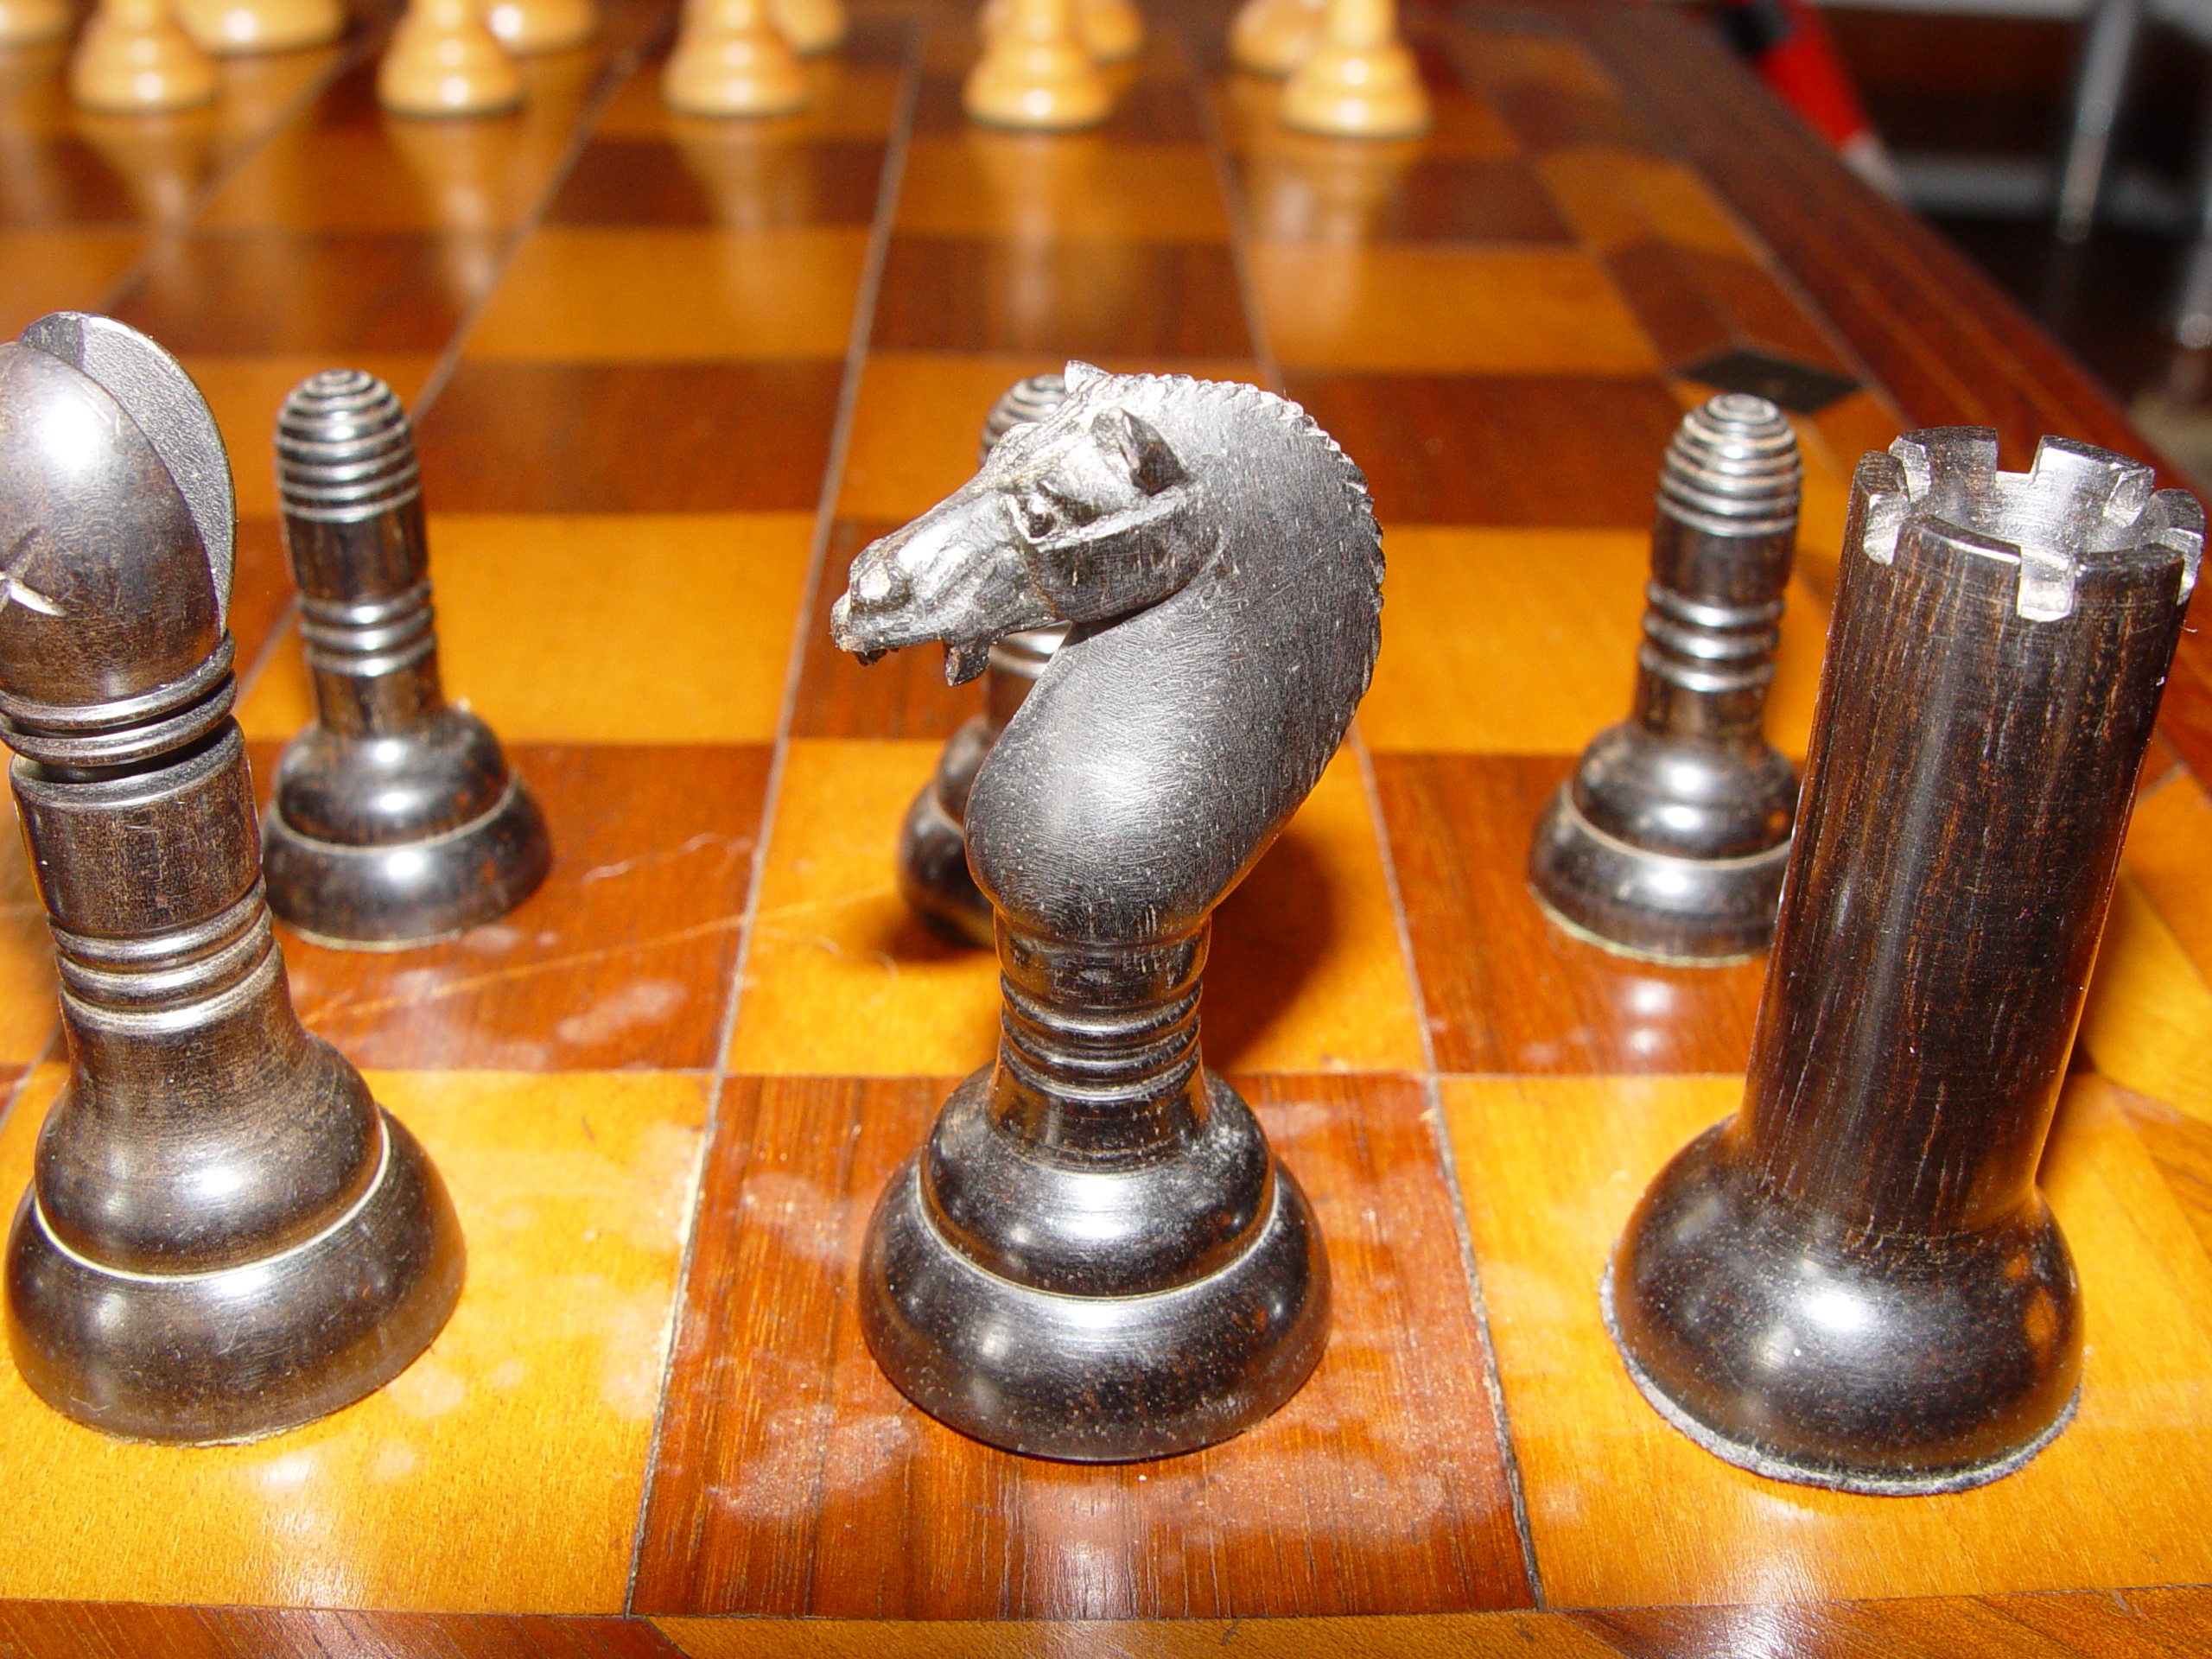 essays on chess Chess: the game of war uploaded by gotskillz on jul 04, 2004 they say that chess is the game of gentlemen.